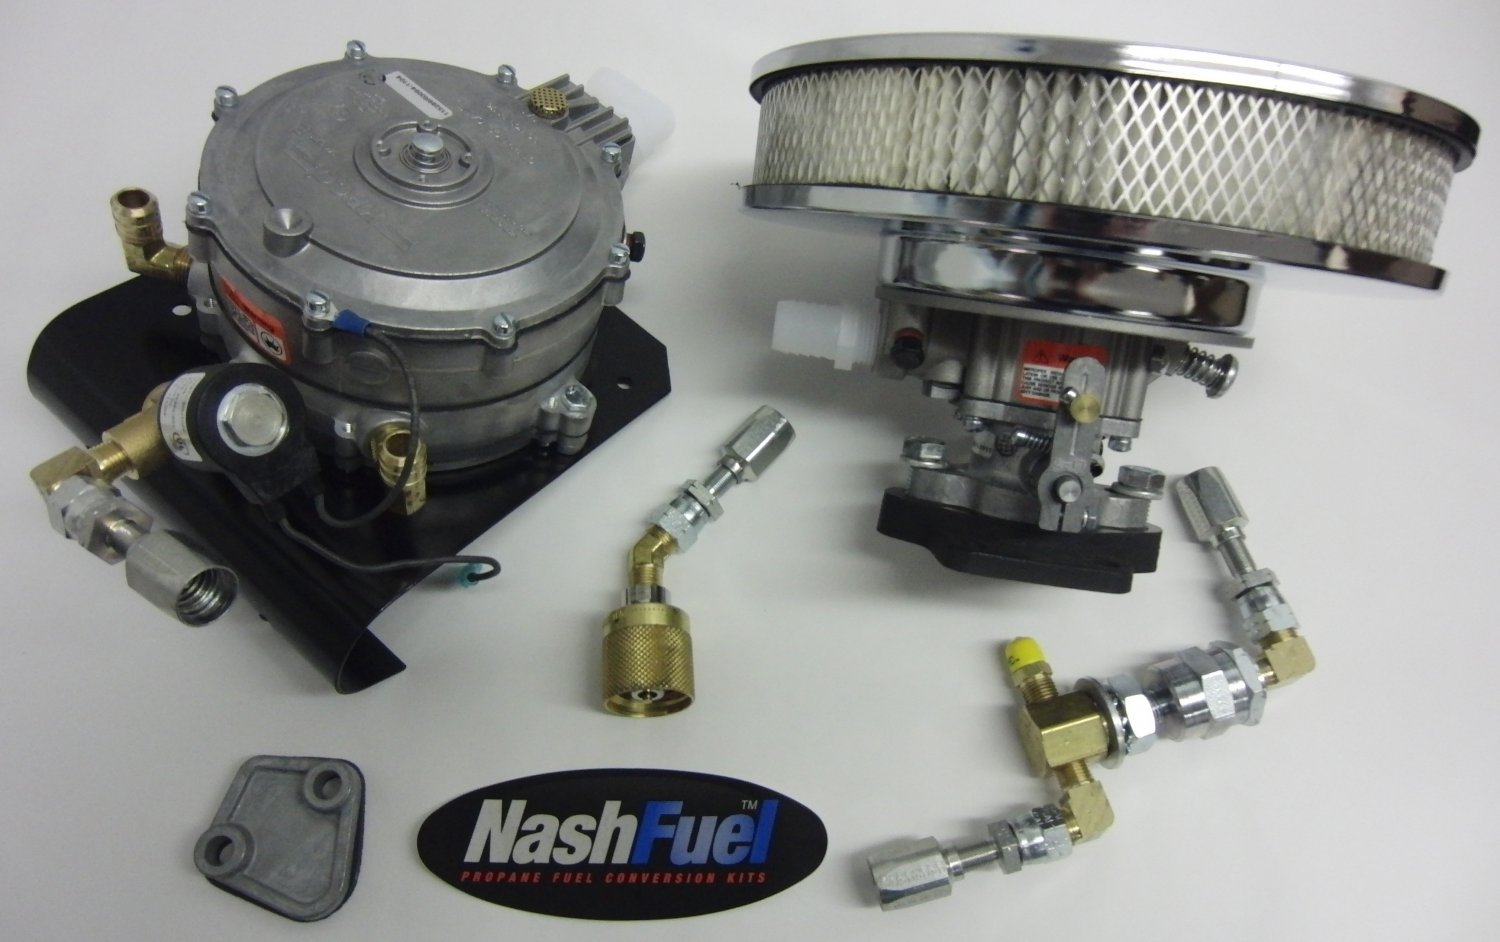 jeep 258 propane kit for 6 cyl carbureted engine 7 3 powerstroke fuel filter change jeep 3 7 fuel filter